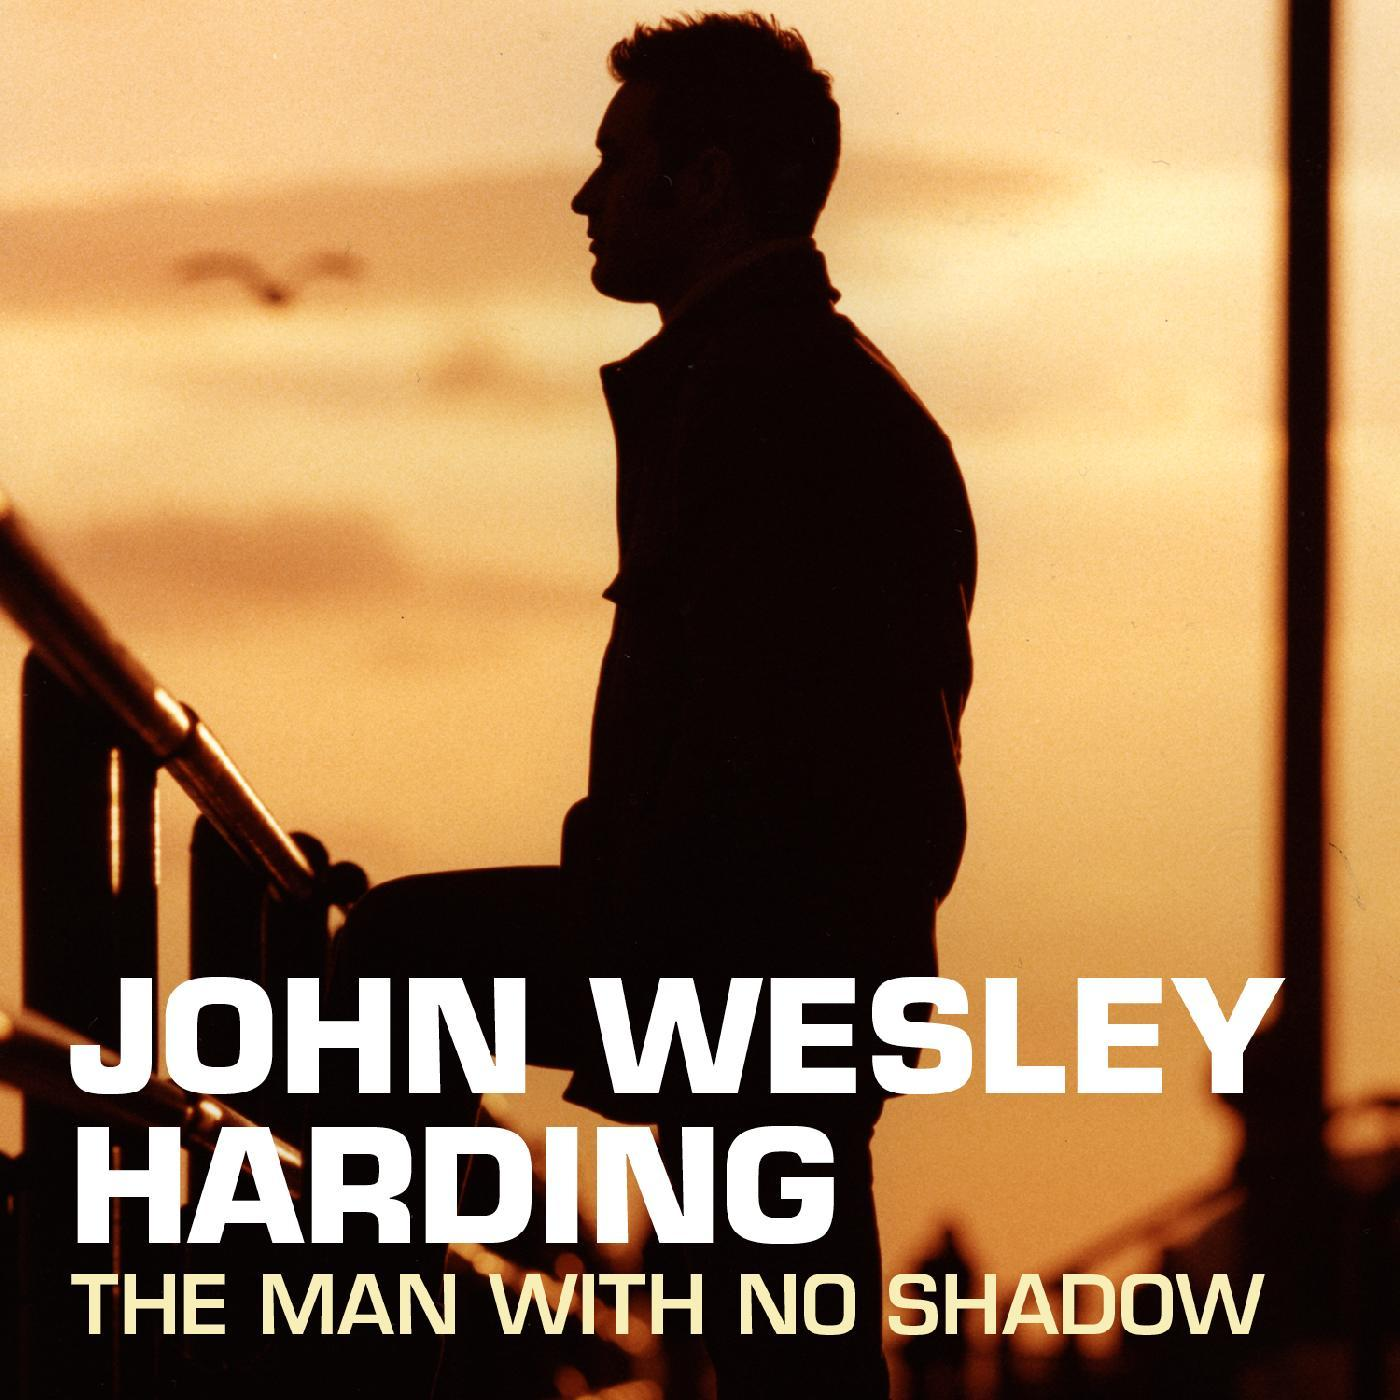 John Wesley Harding - The Man With No Shadow [RSD Drops Aug 2020]